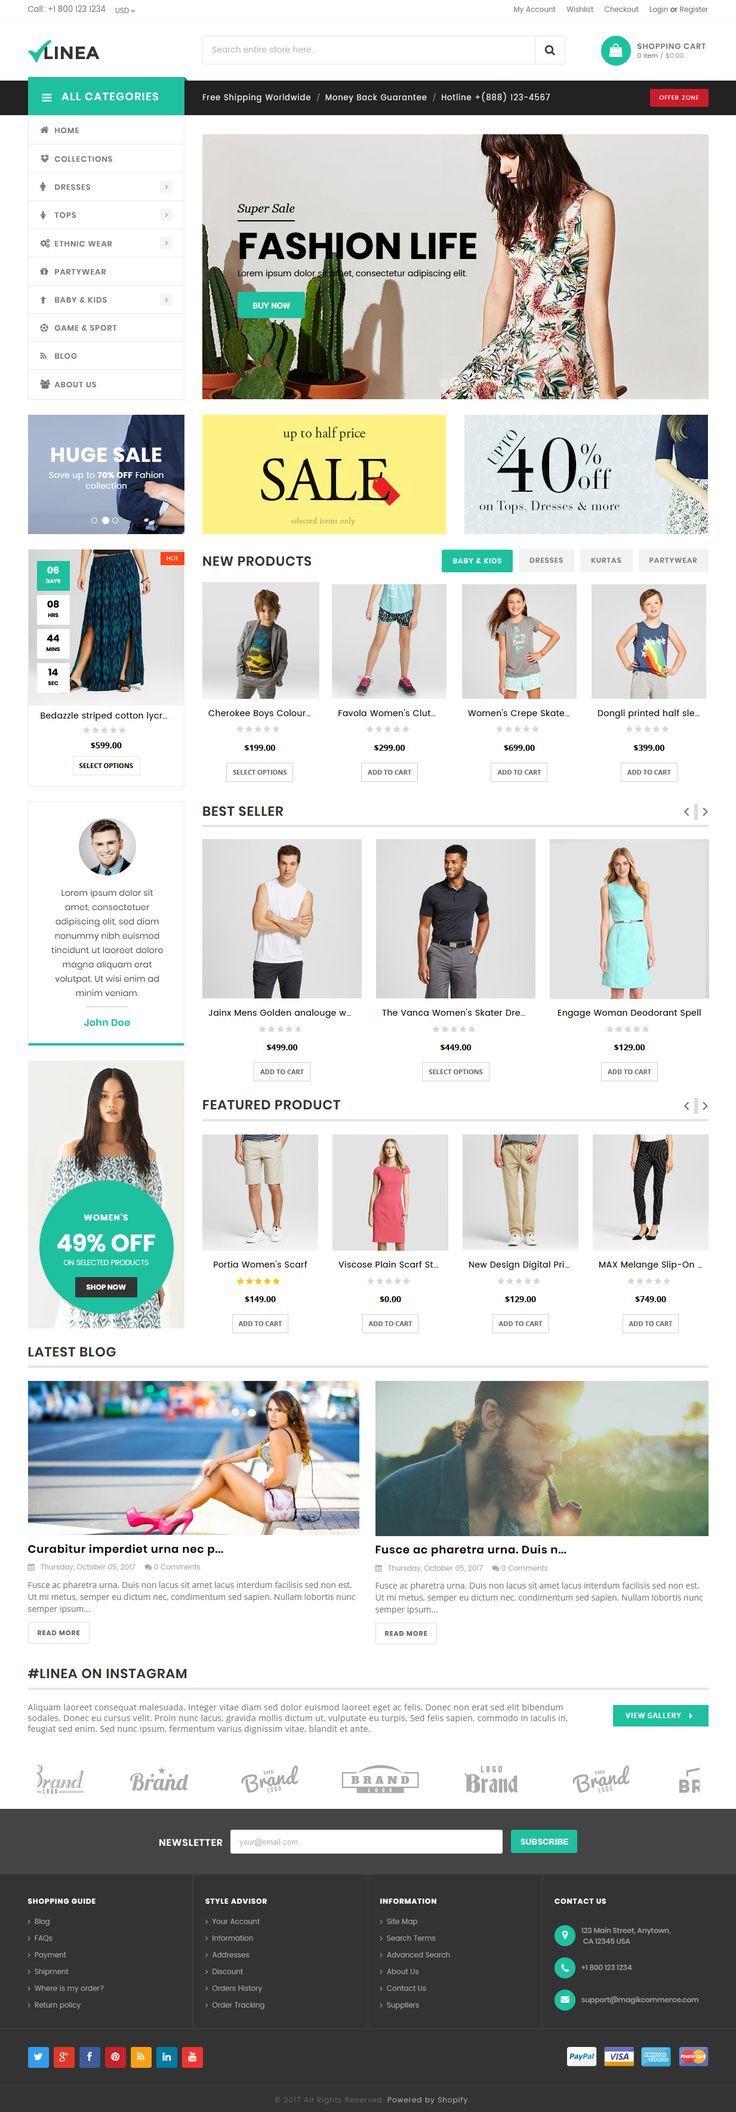 Linea - Clothing Store Shopify Theme (Sections Drag & Drop Ready) #Clothing store website #Clothing store website shopify #clothing templates • Download ➝ https://themeforest.net/item/linea-clothing-store-shopify-theme-sections-drag-drop-ready/20804896?ref=rabosch